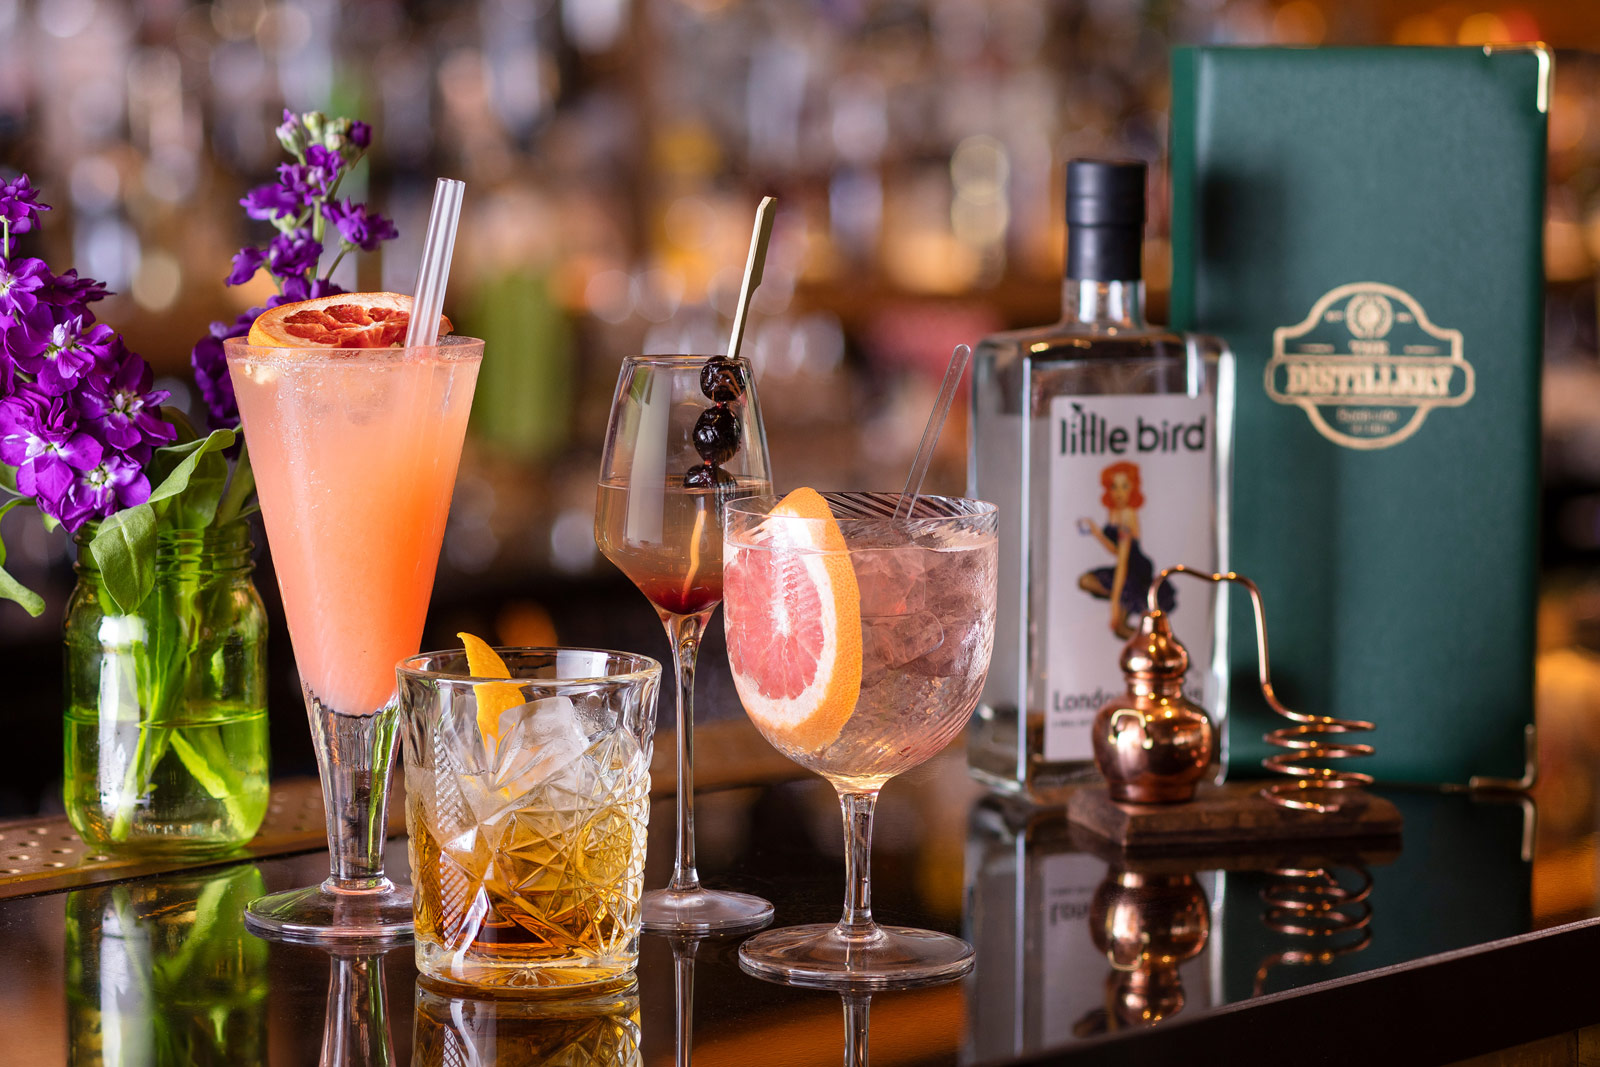 Little Bird Gin Summer Residency At The Hilton Bankside's Distillery bar